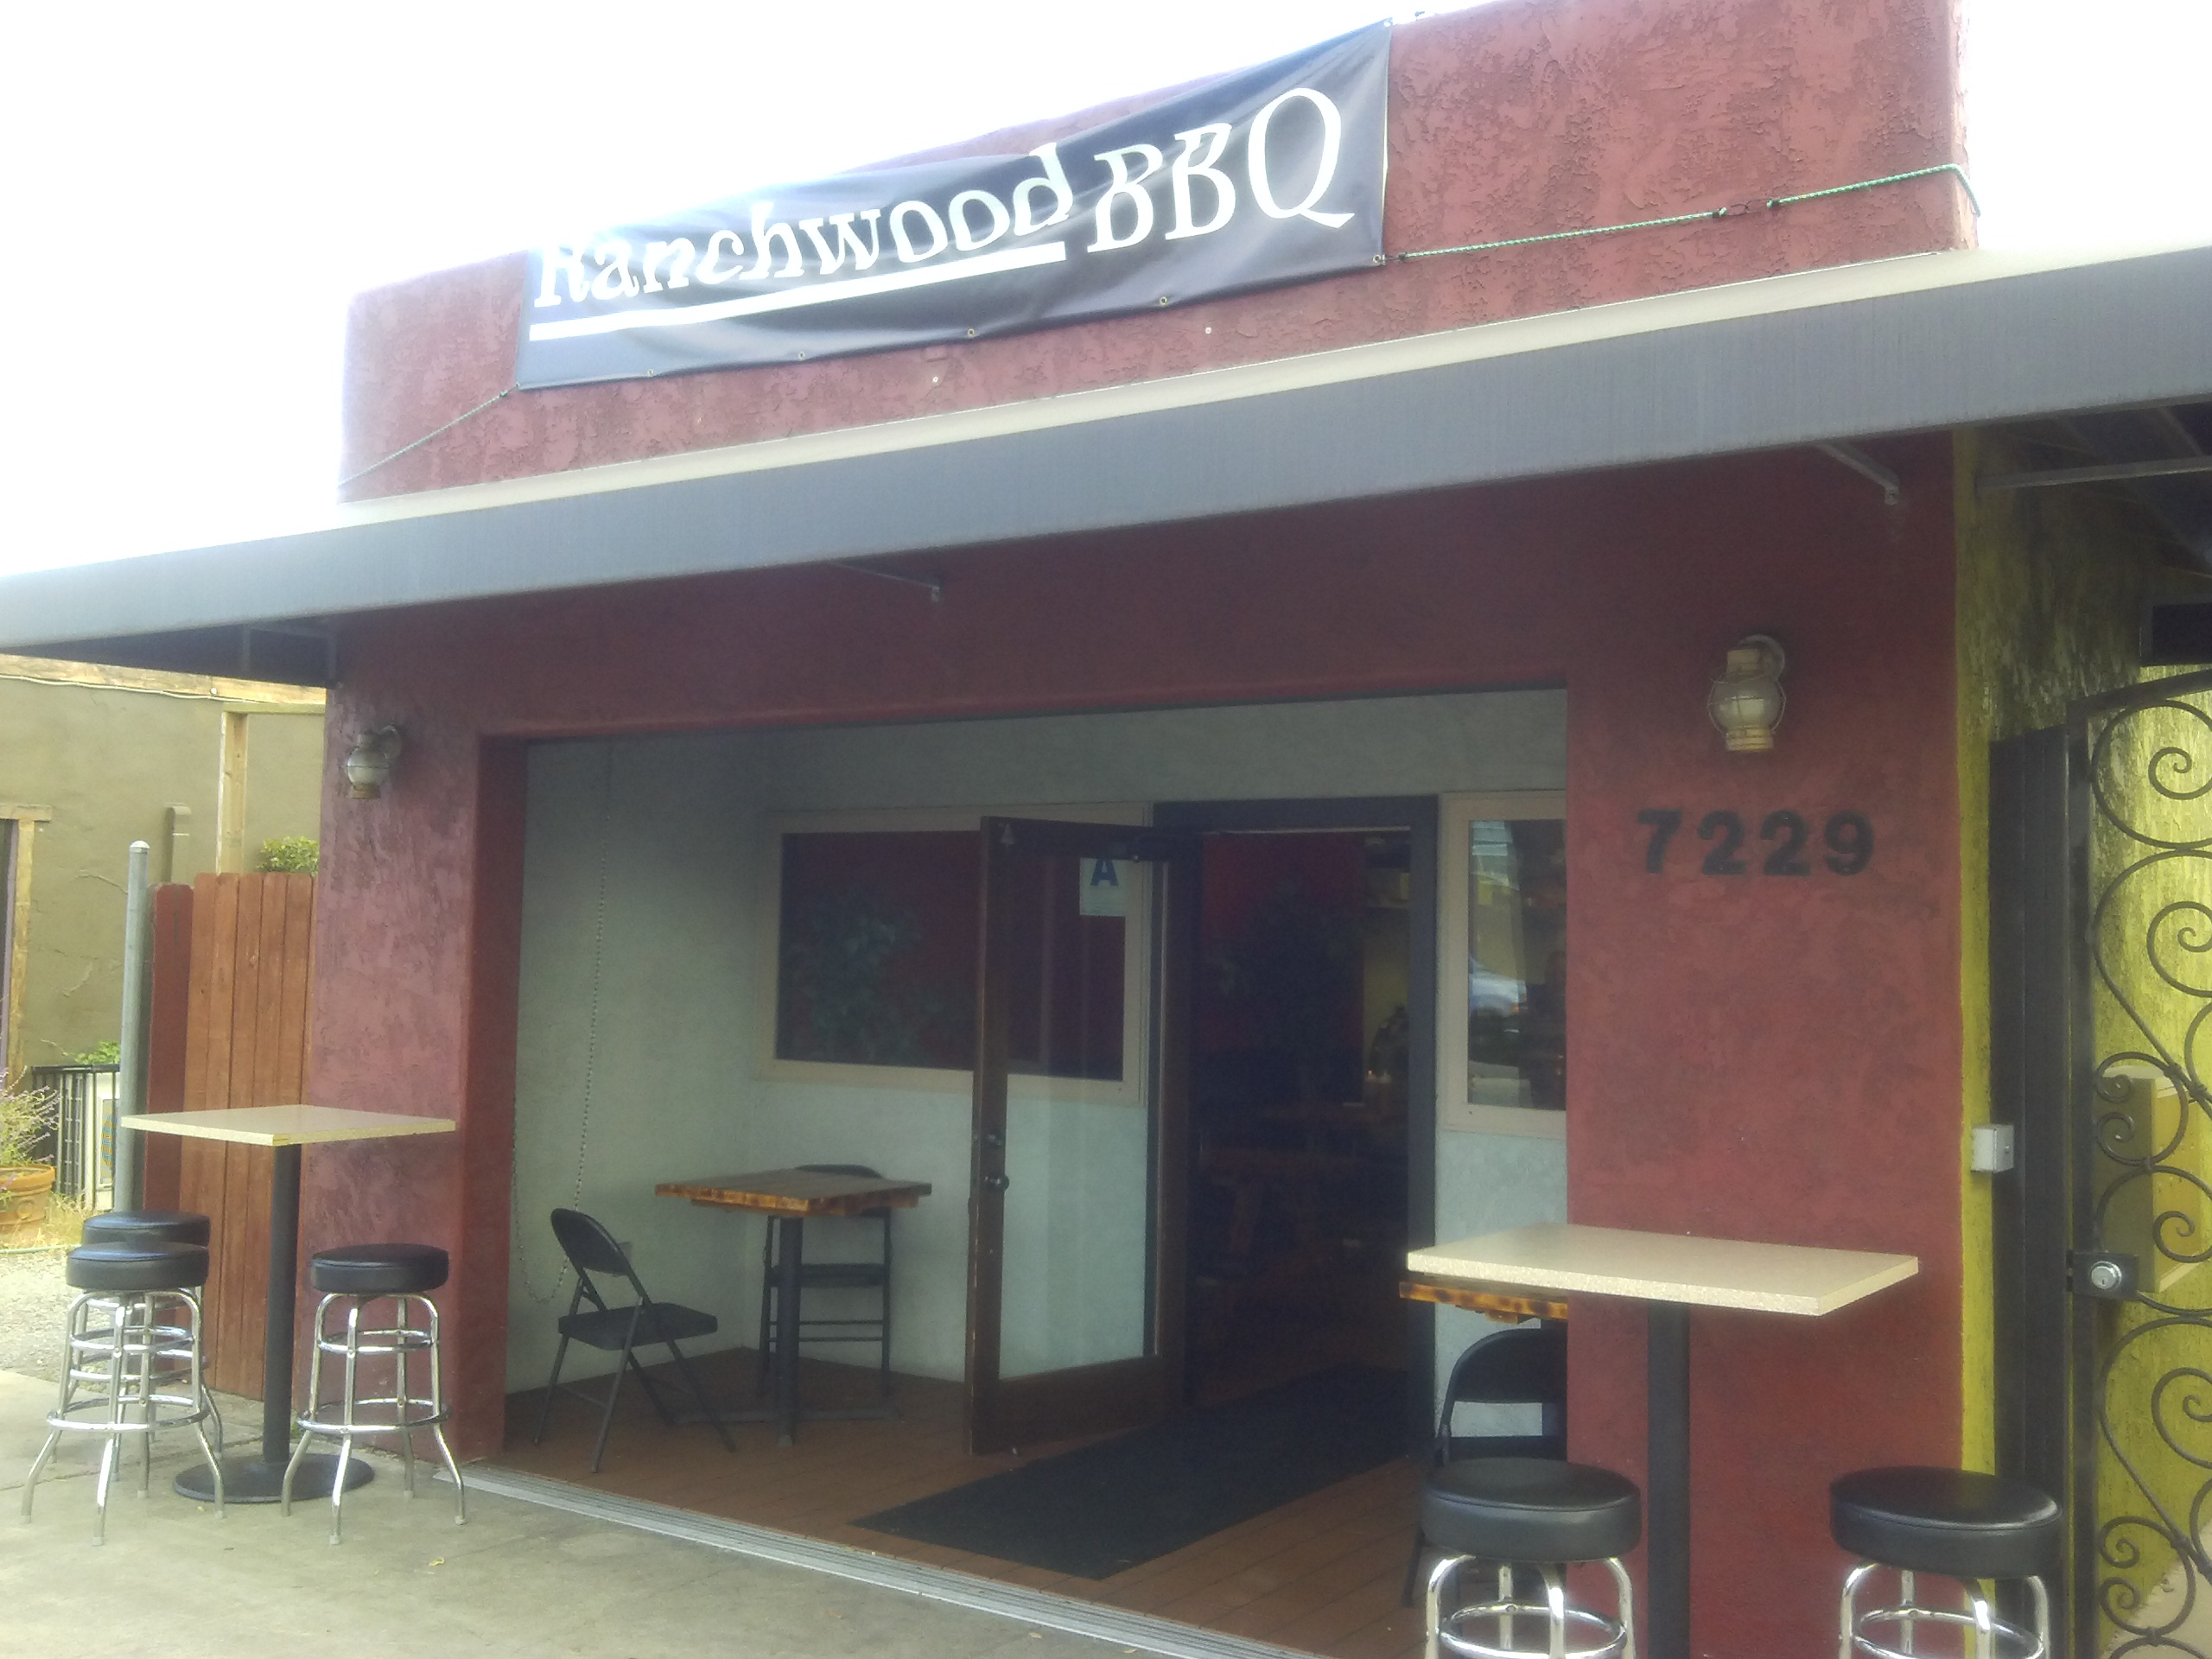 Ranchwood BBQ & Catering image 2